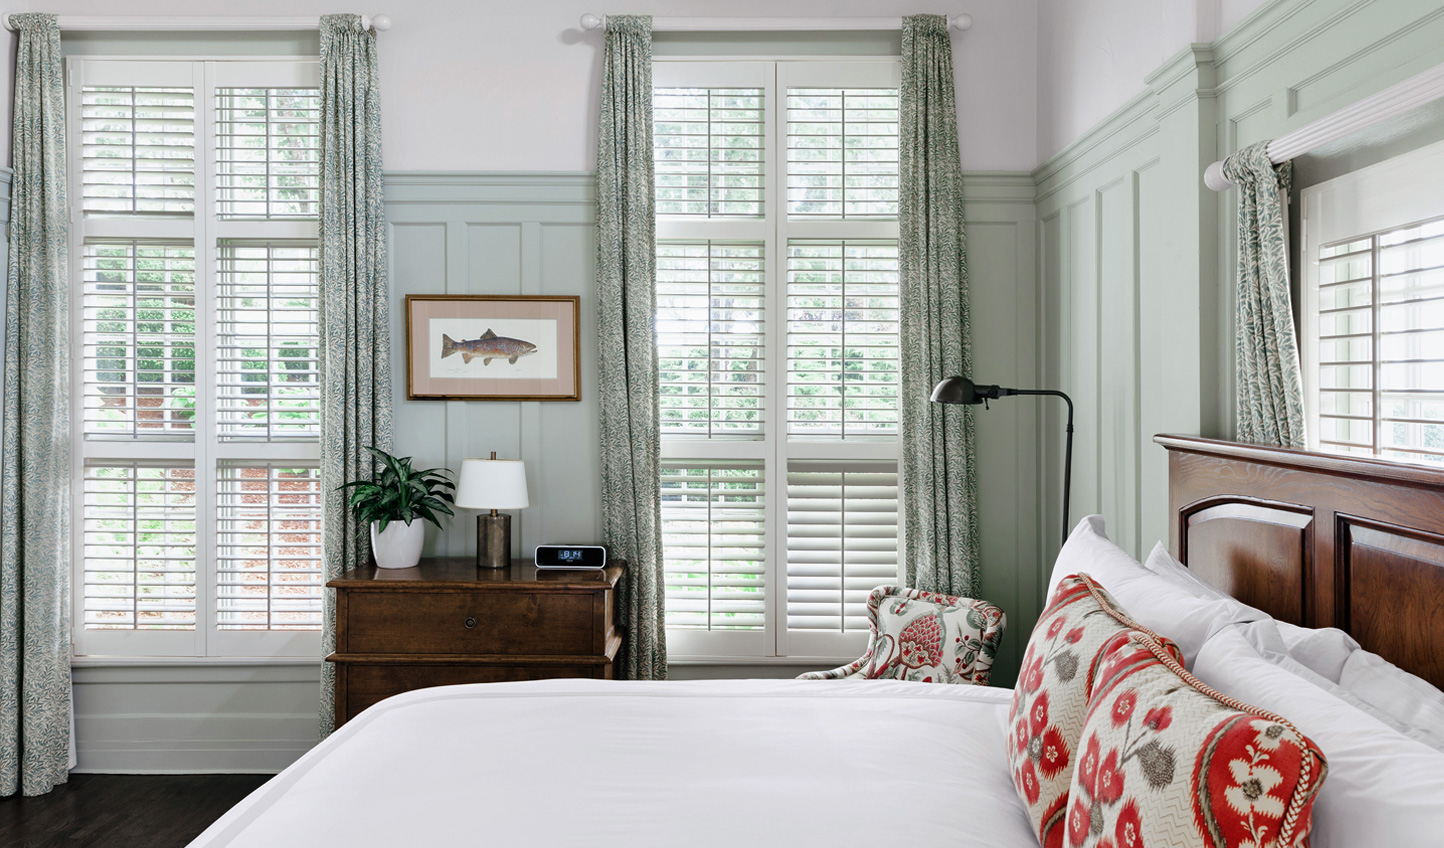 Each room features luxurious interiors